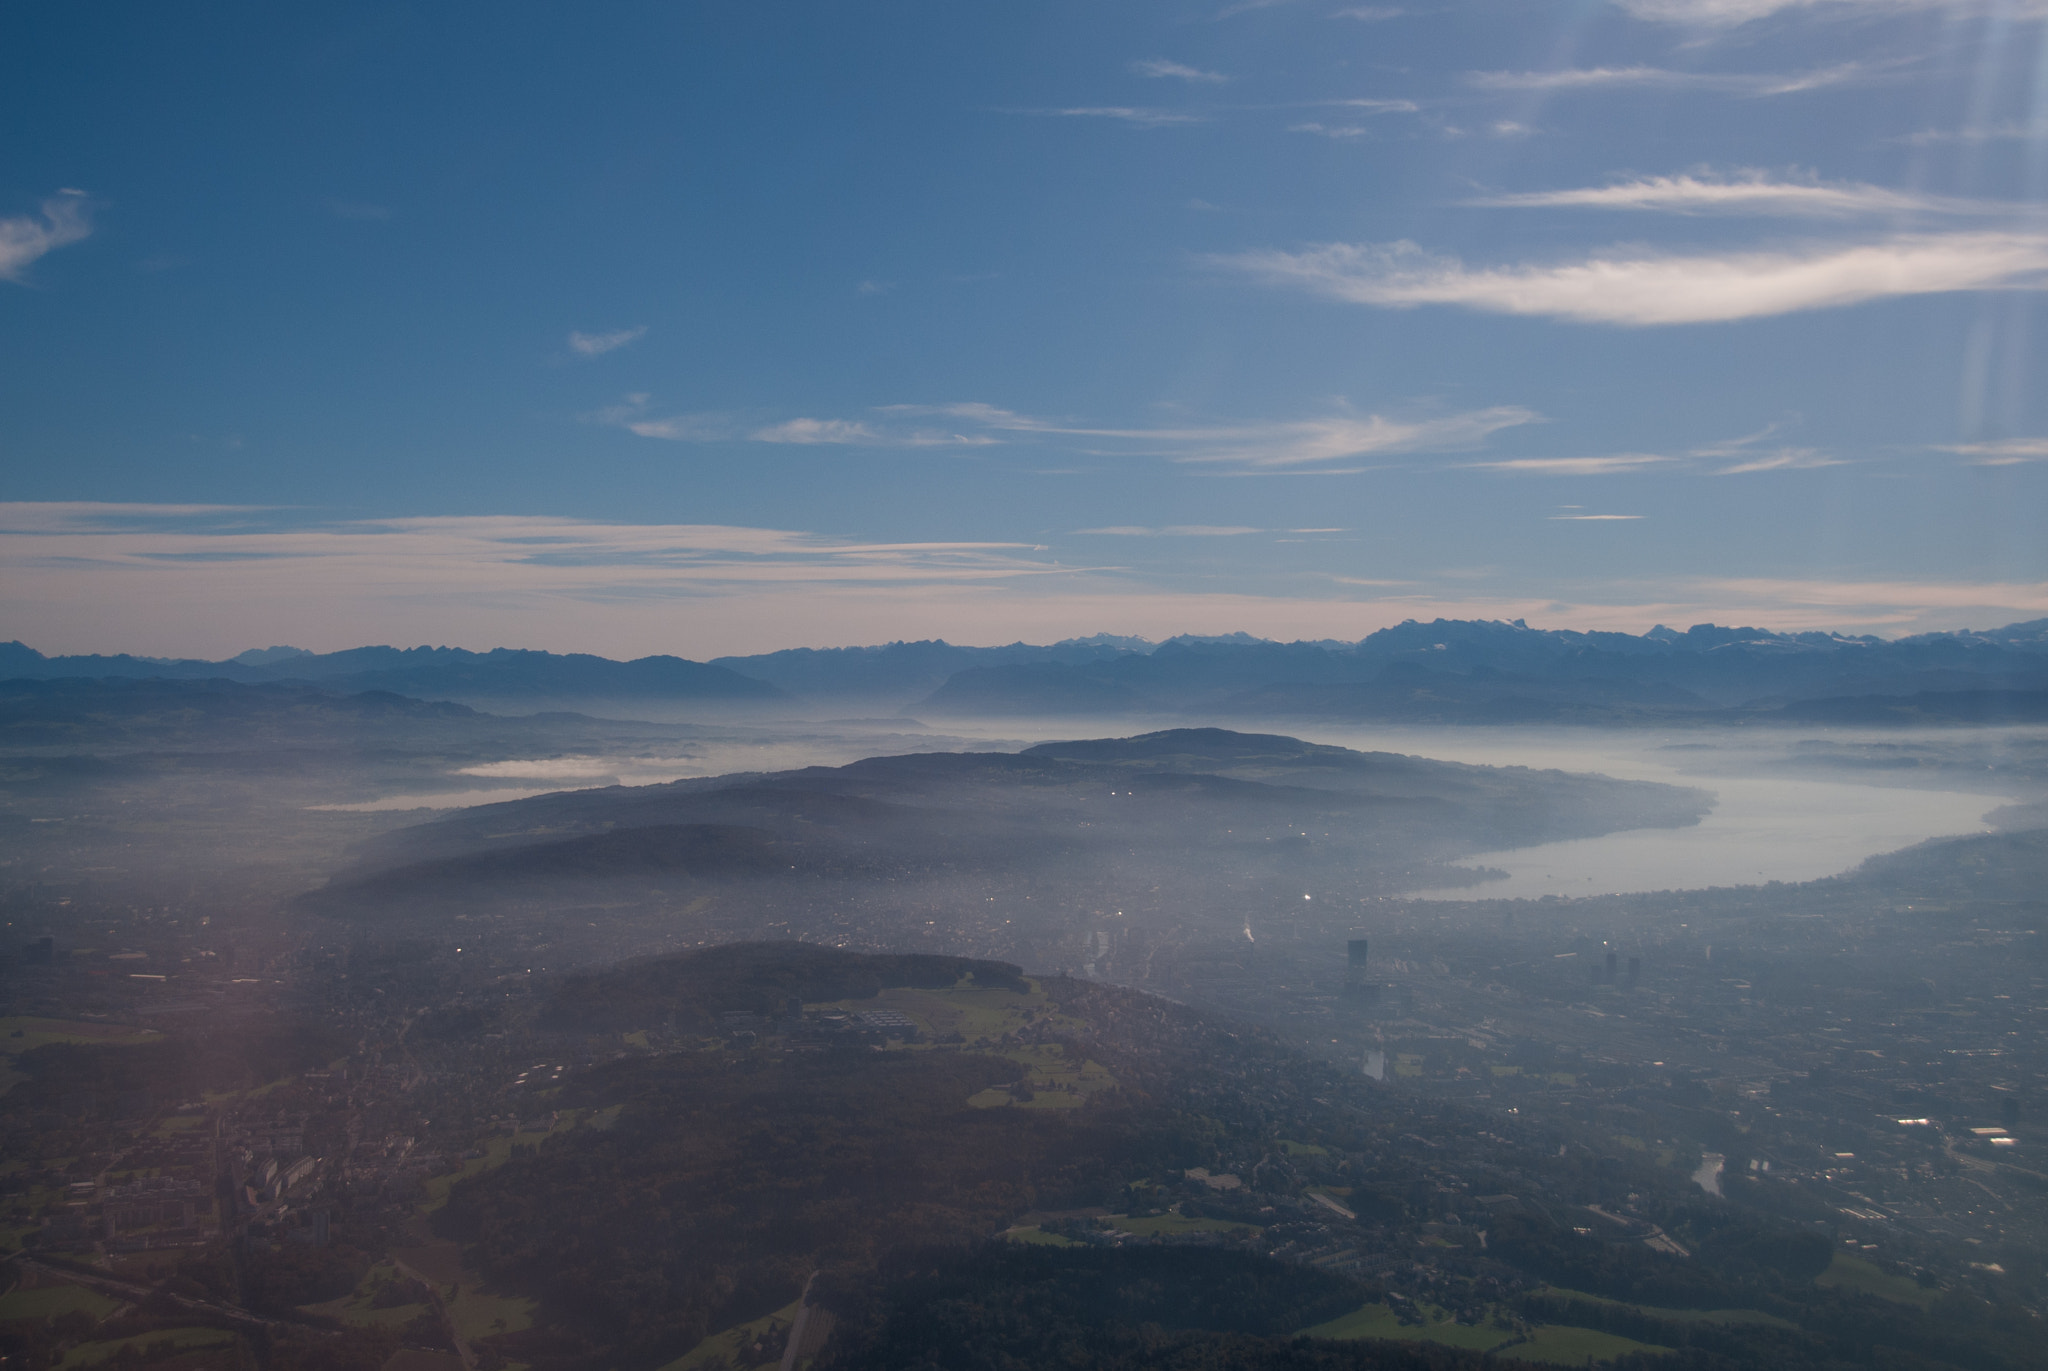 Photograph Zürich from the Air by Dennis Eitner on 500px